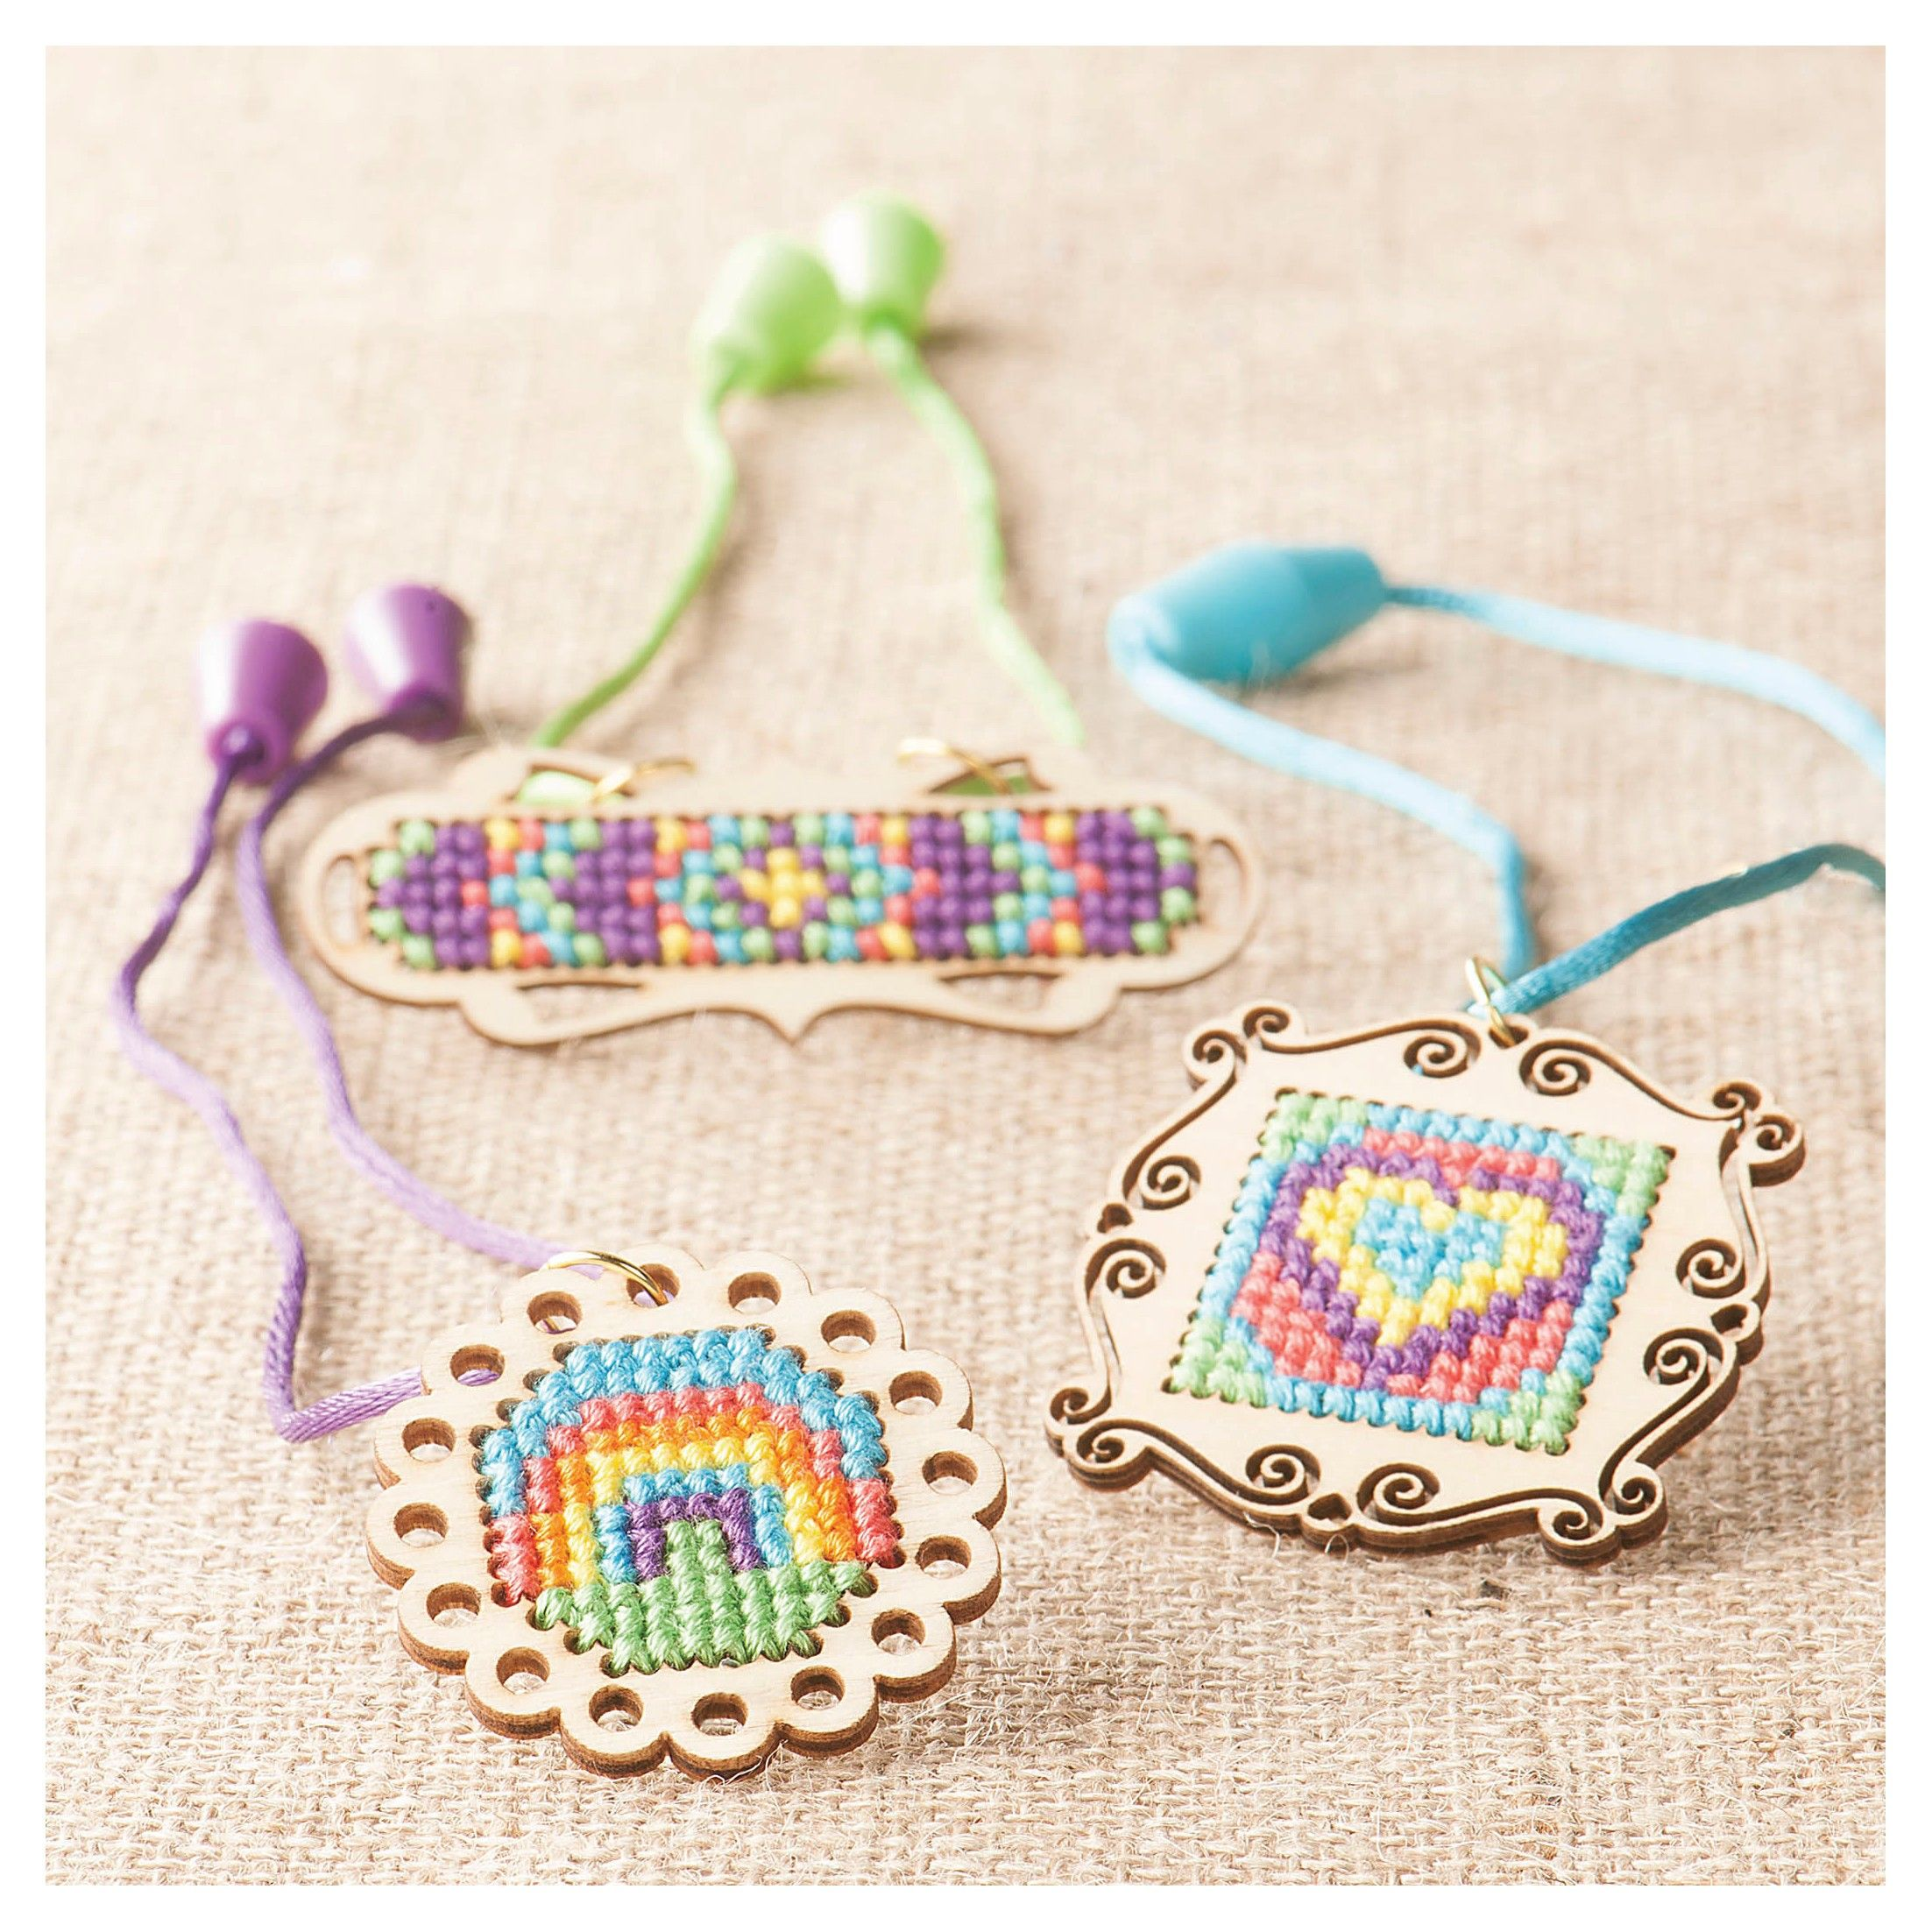 Craftabelle Cross-Stitch Pendant Craft Kit, target link doesn't seem to work, but these are cute.